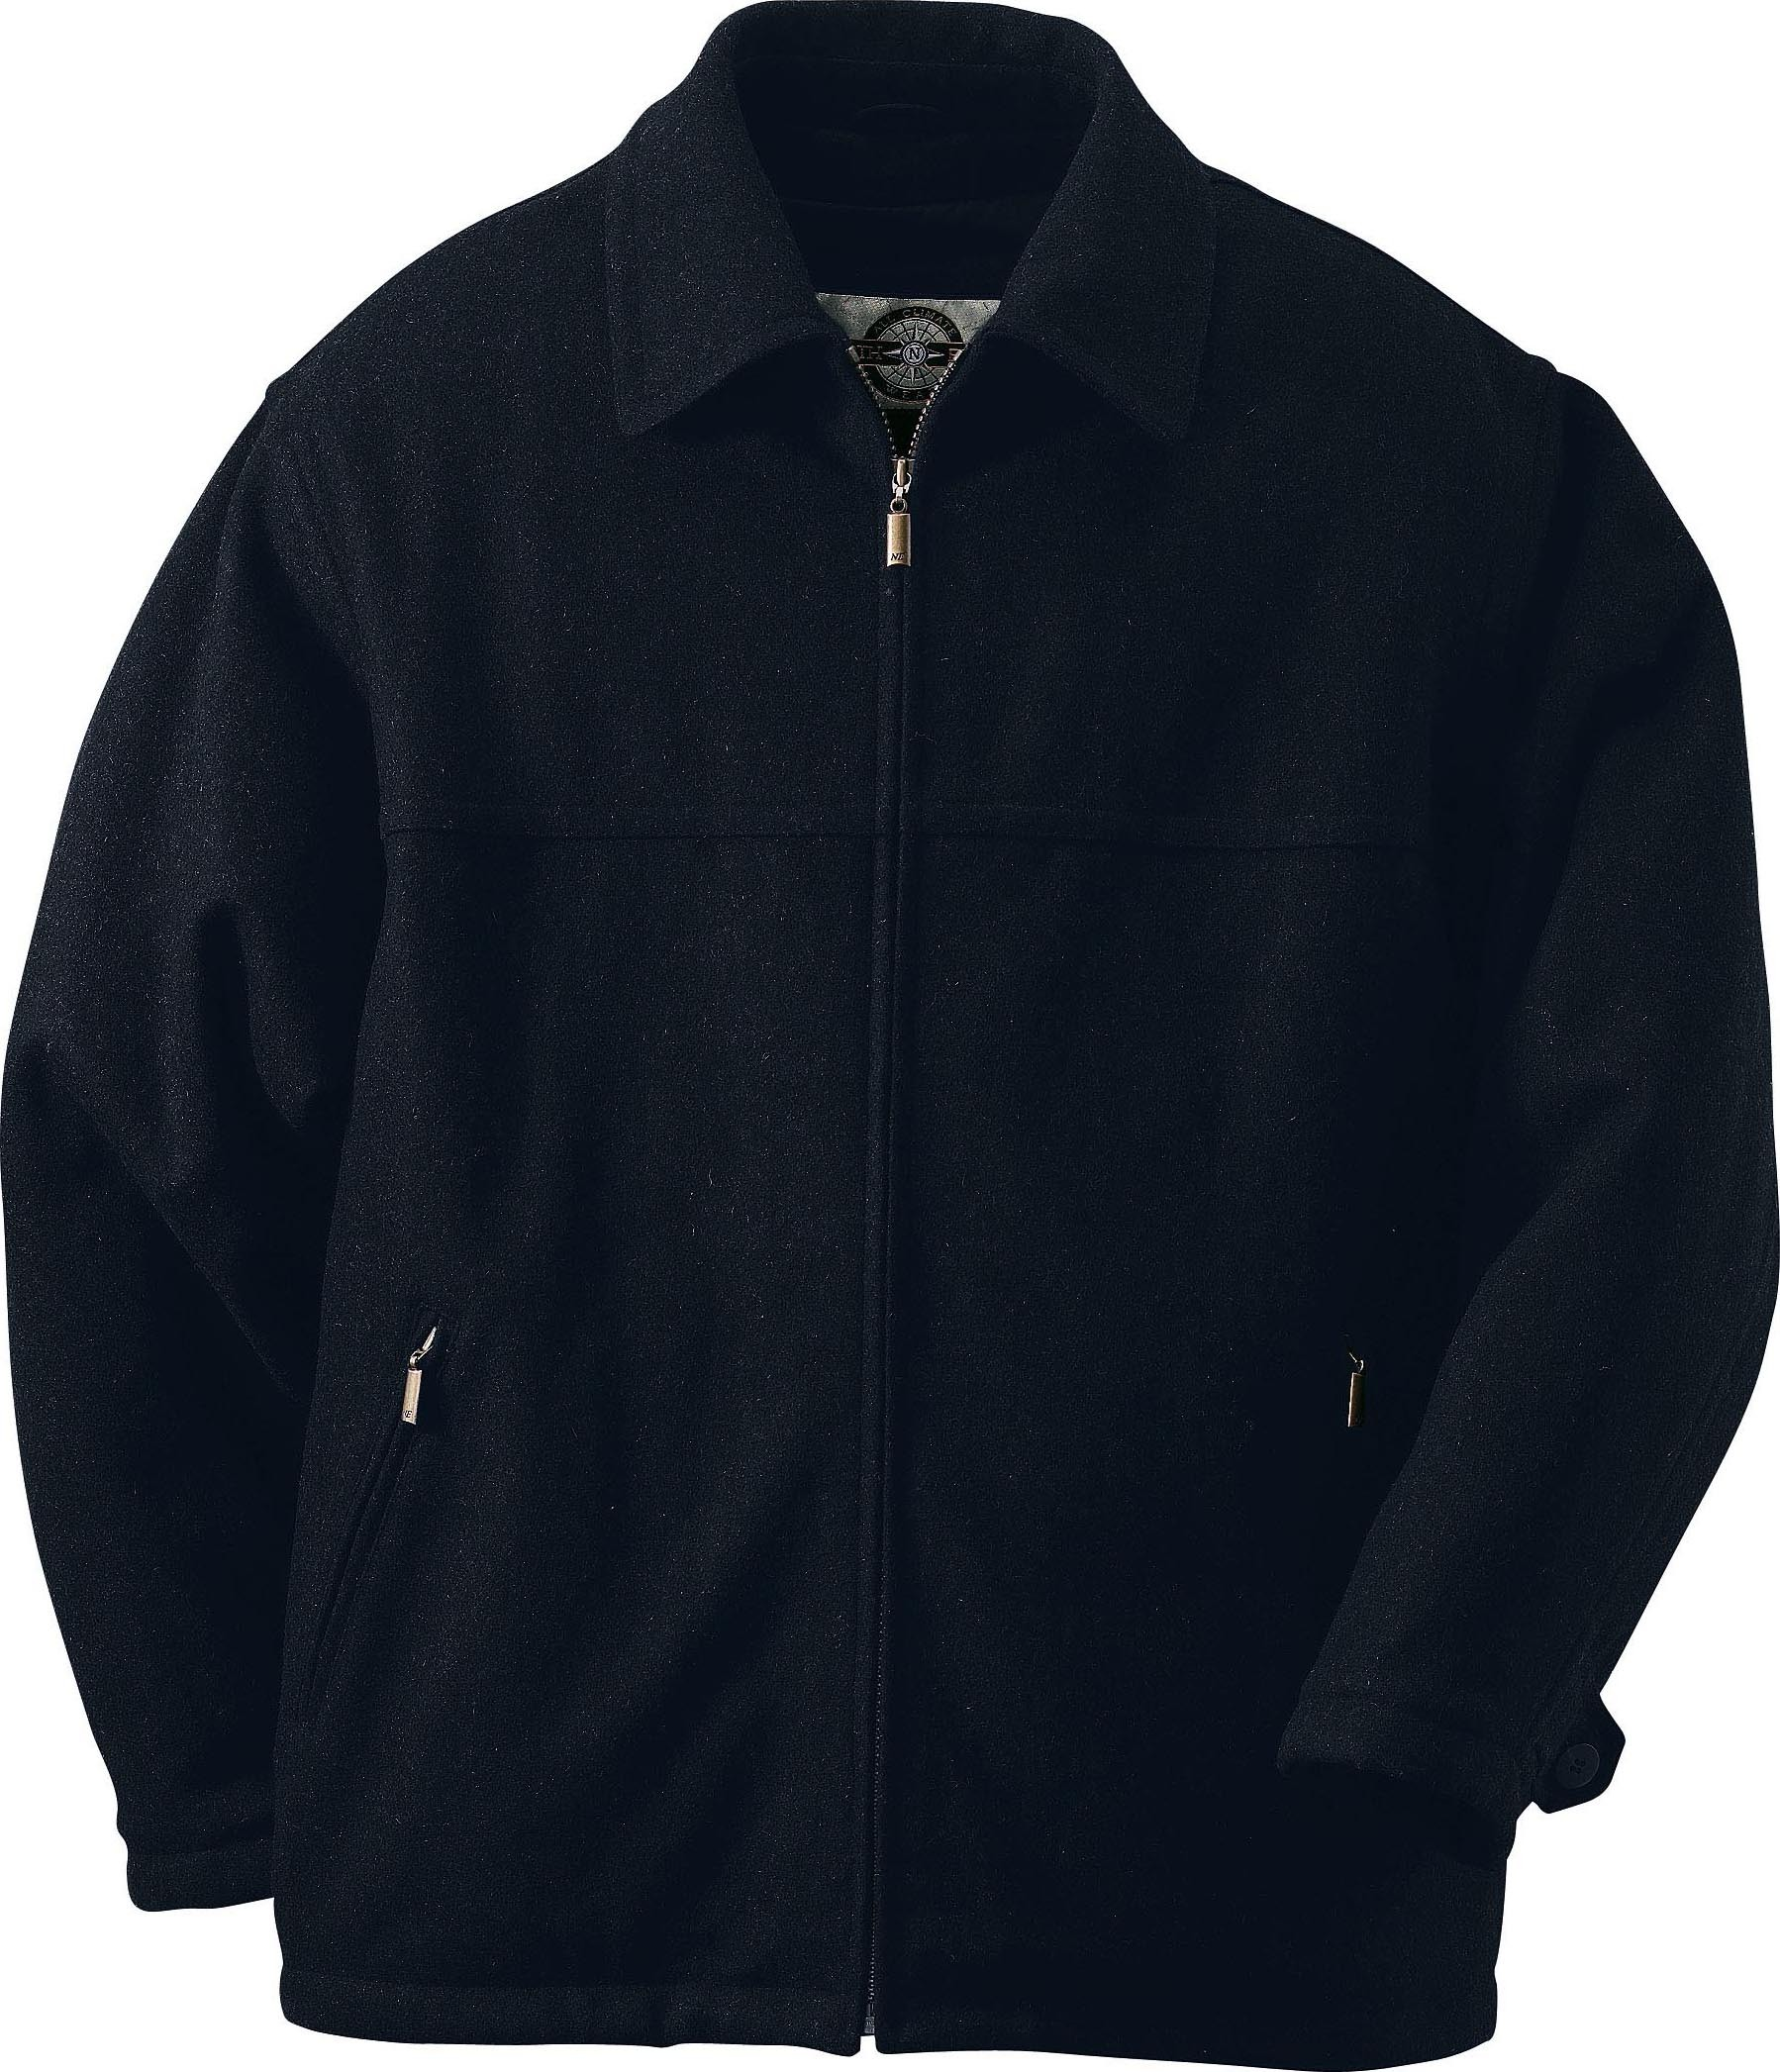 Ash City UTK 2 Warm.Logik 88069 - Men's Classical Wool Insulated Jacket